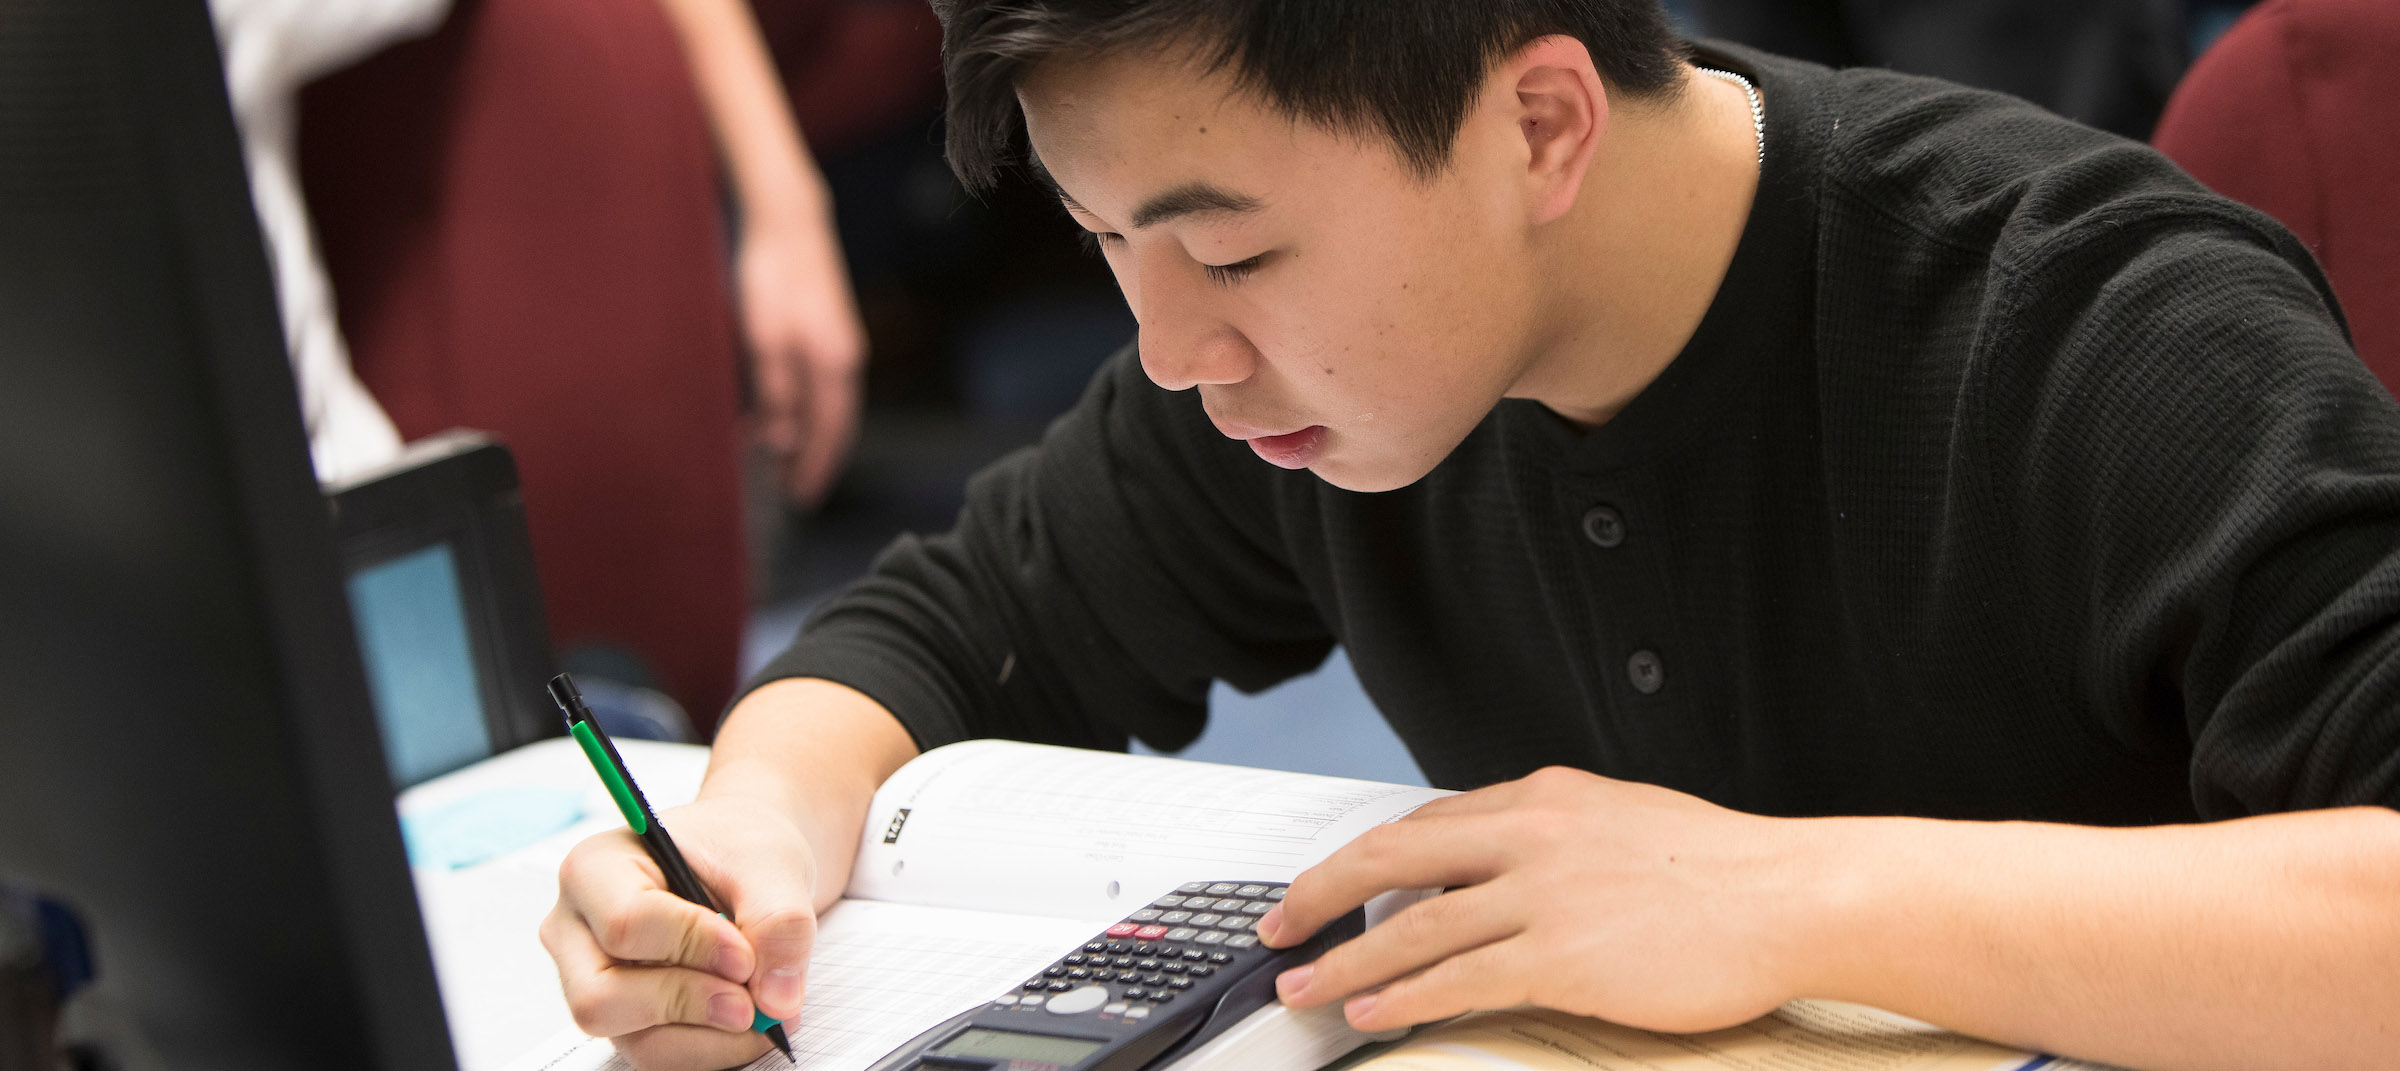 Students looking at book with calculator